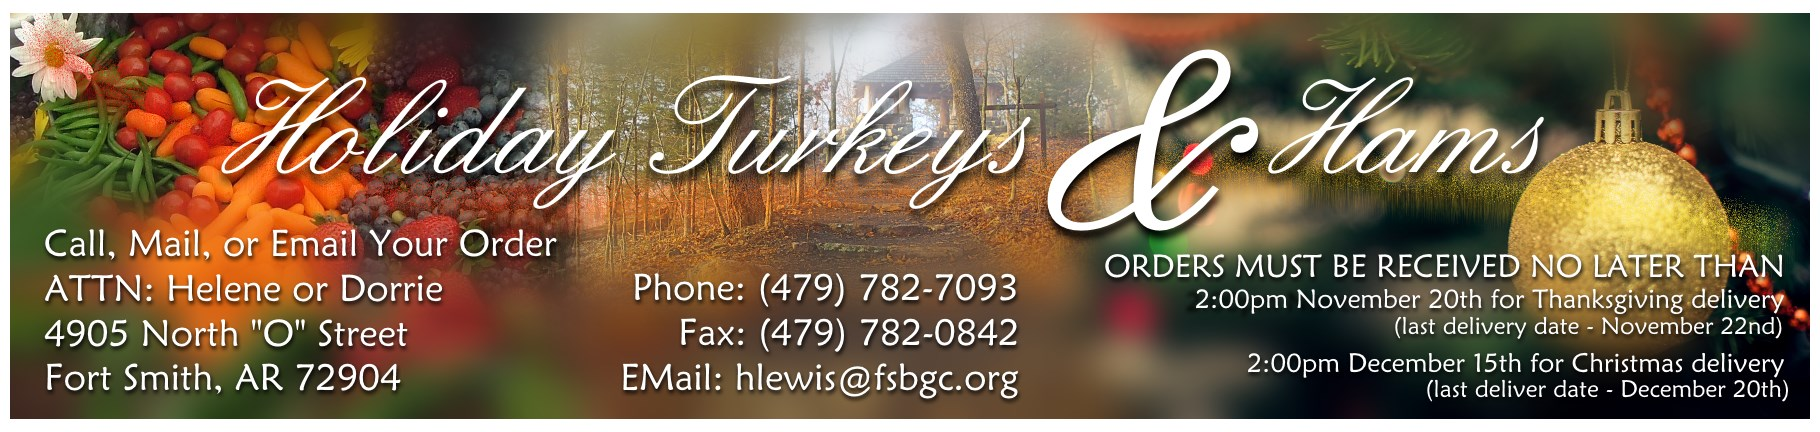 2017 Holiday Turkeys Hams Sale